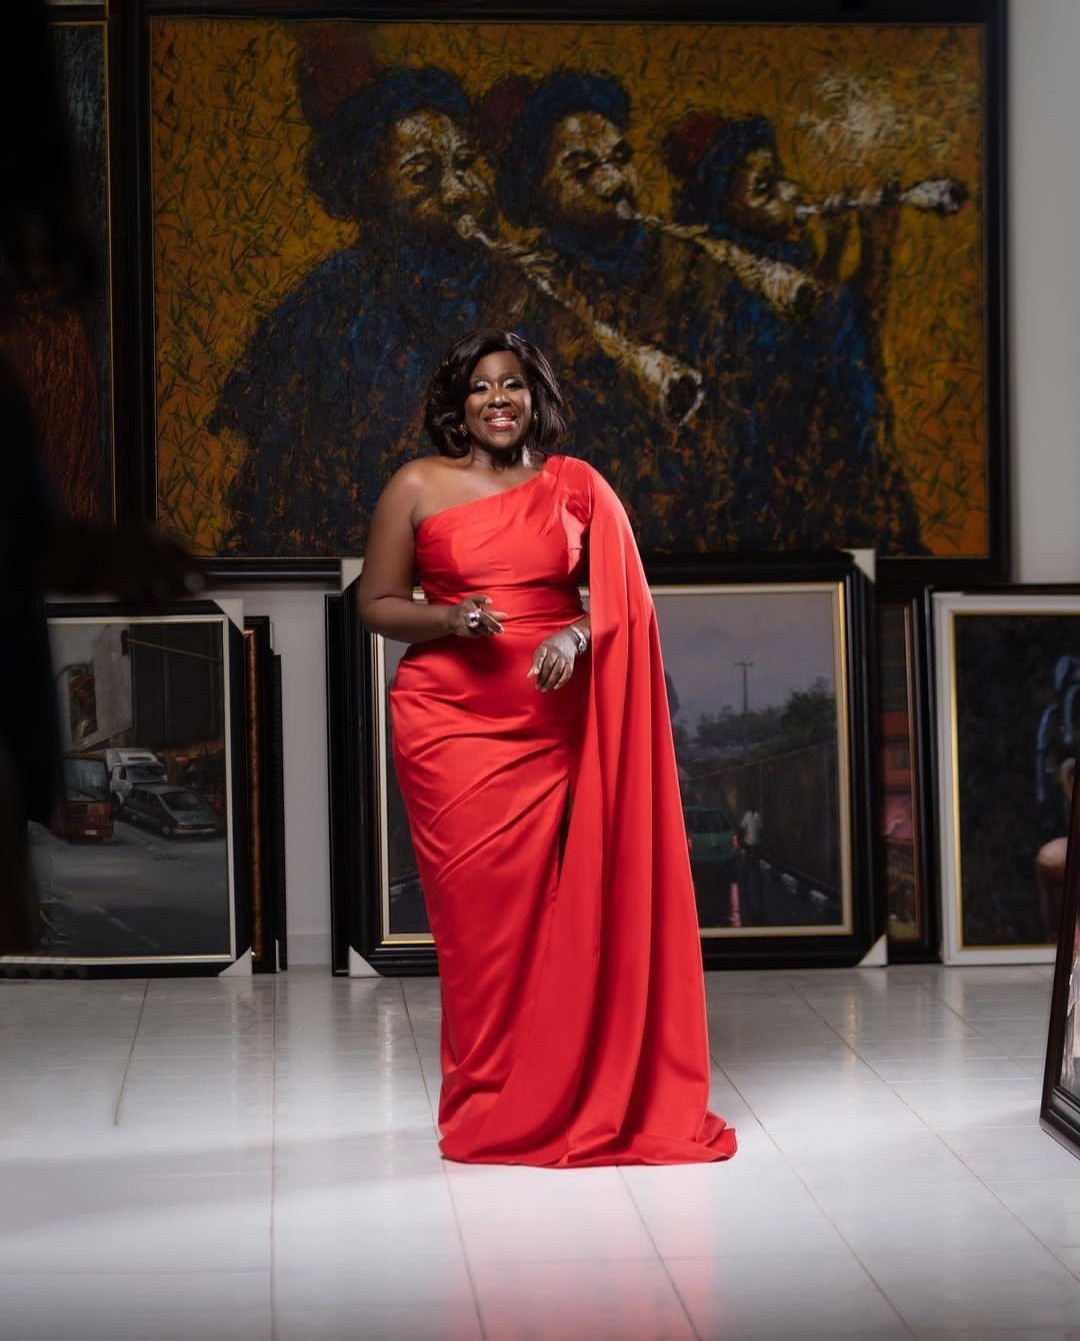 Joke Silva celebrates 60th birthday and 40th anniversary of being in the movie industry